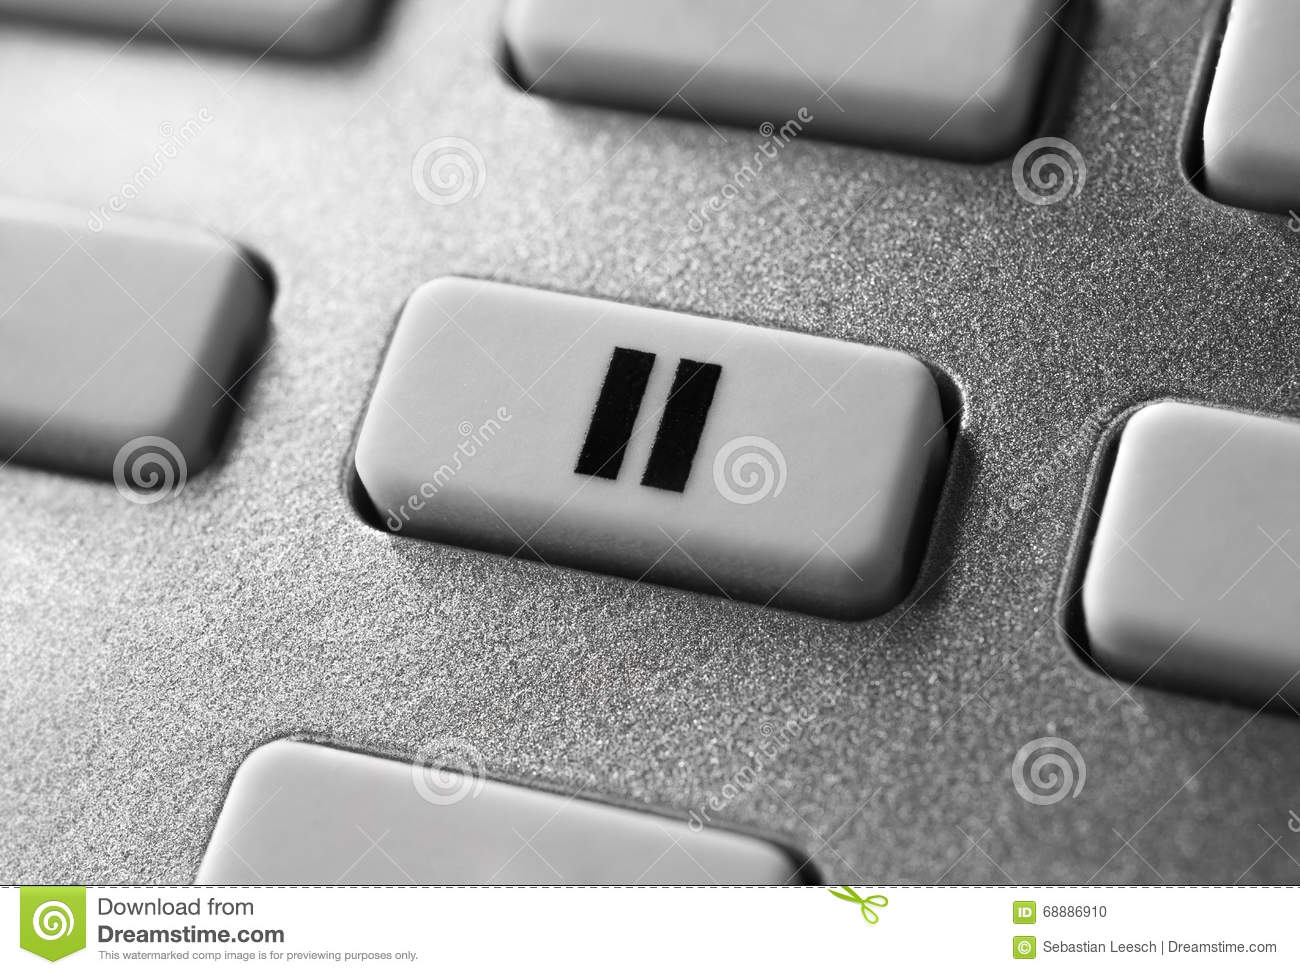 Close Up Of A Grey Pause Button On Chrome Remote Control For A Hifi Stereo Audio System